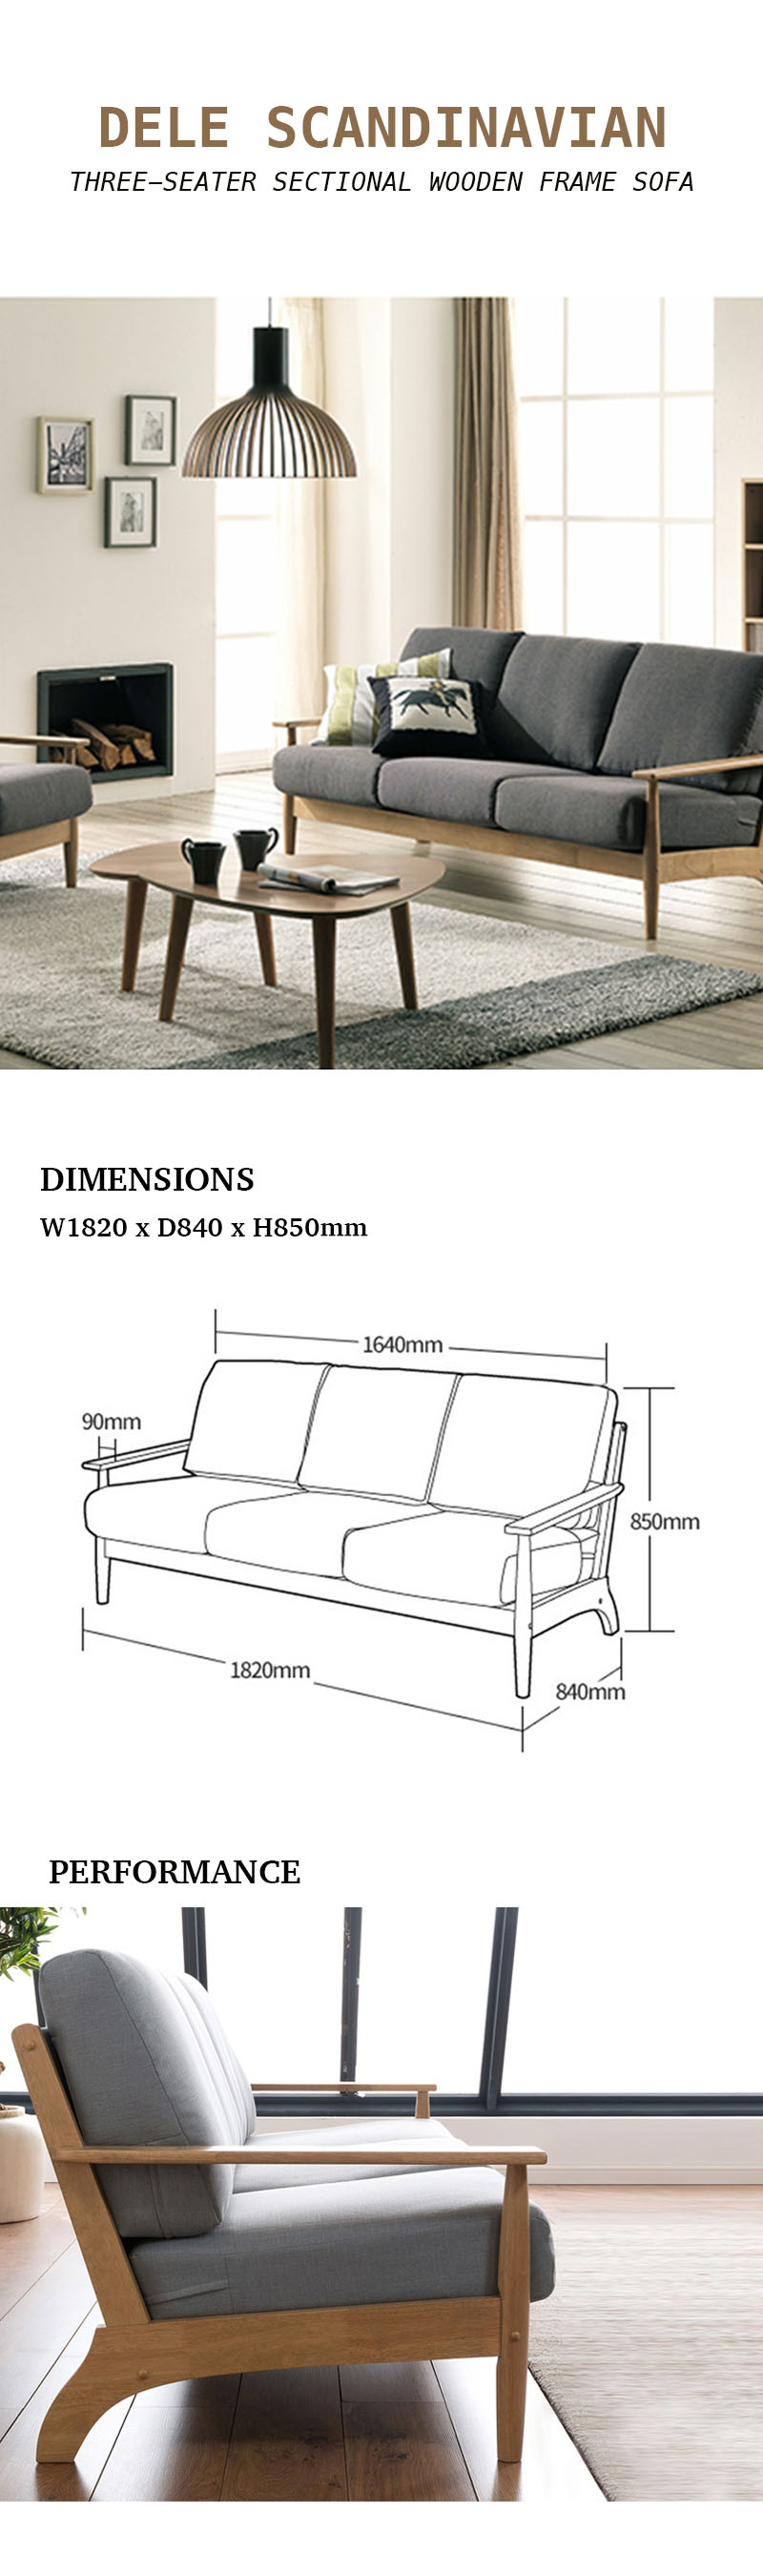 dele_scandinavian_3_seater_sectional_wooden_frame_sofa_dark_grey_by_born_in_colour